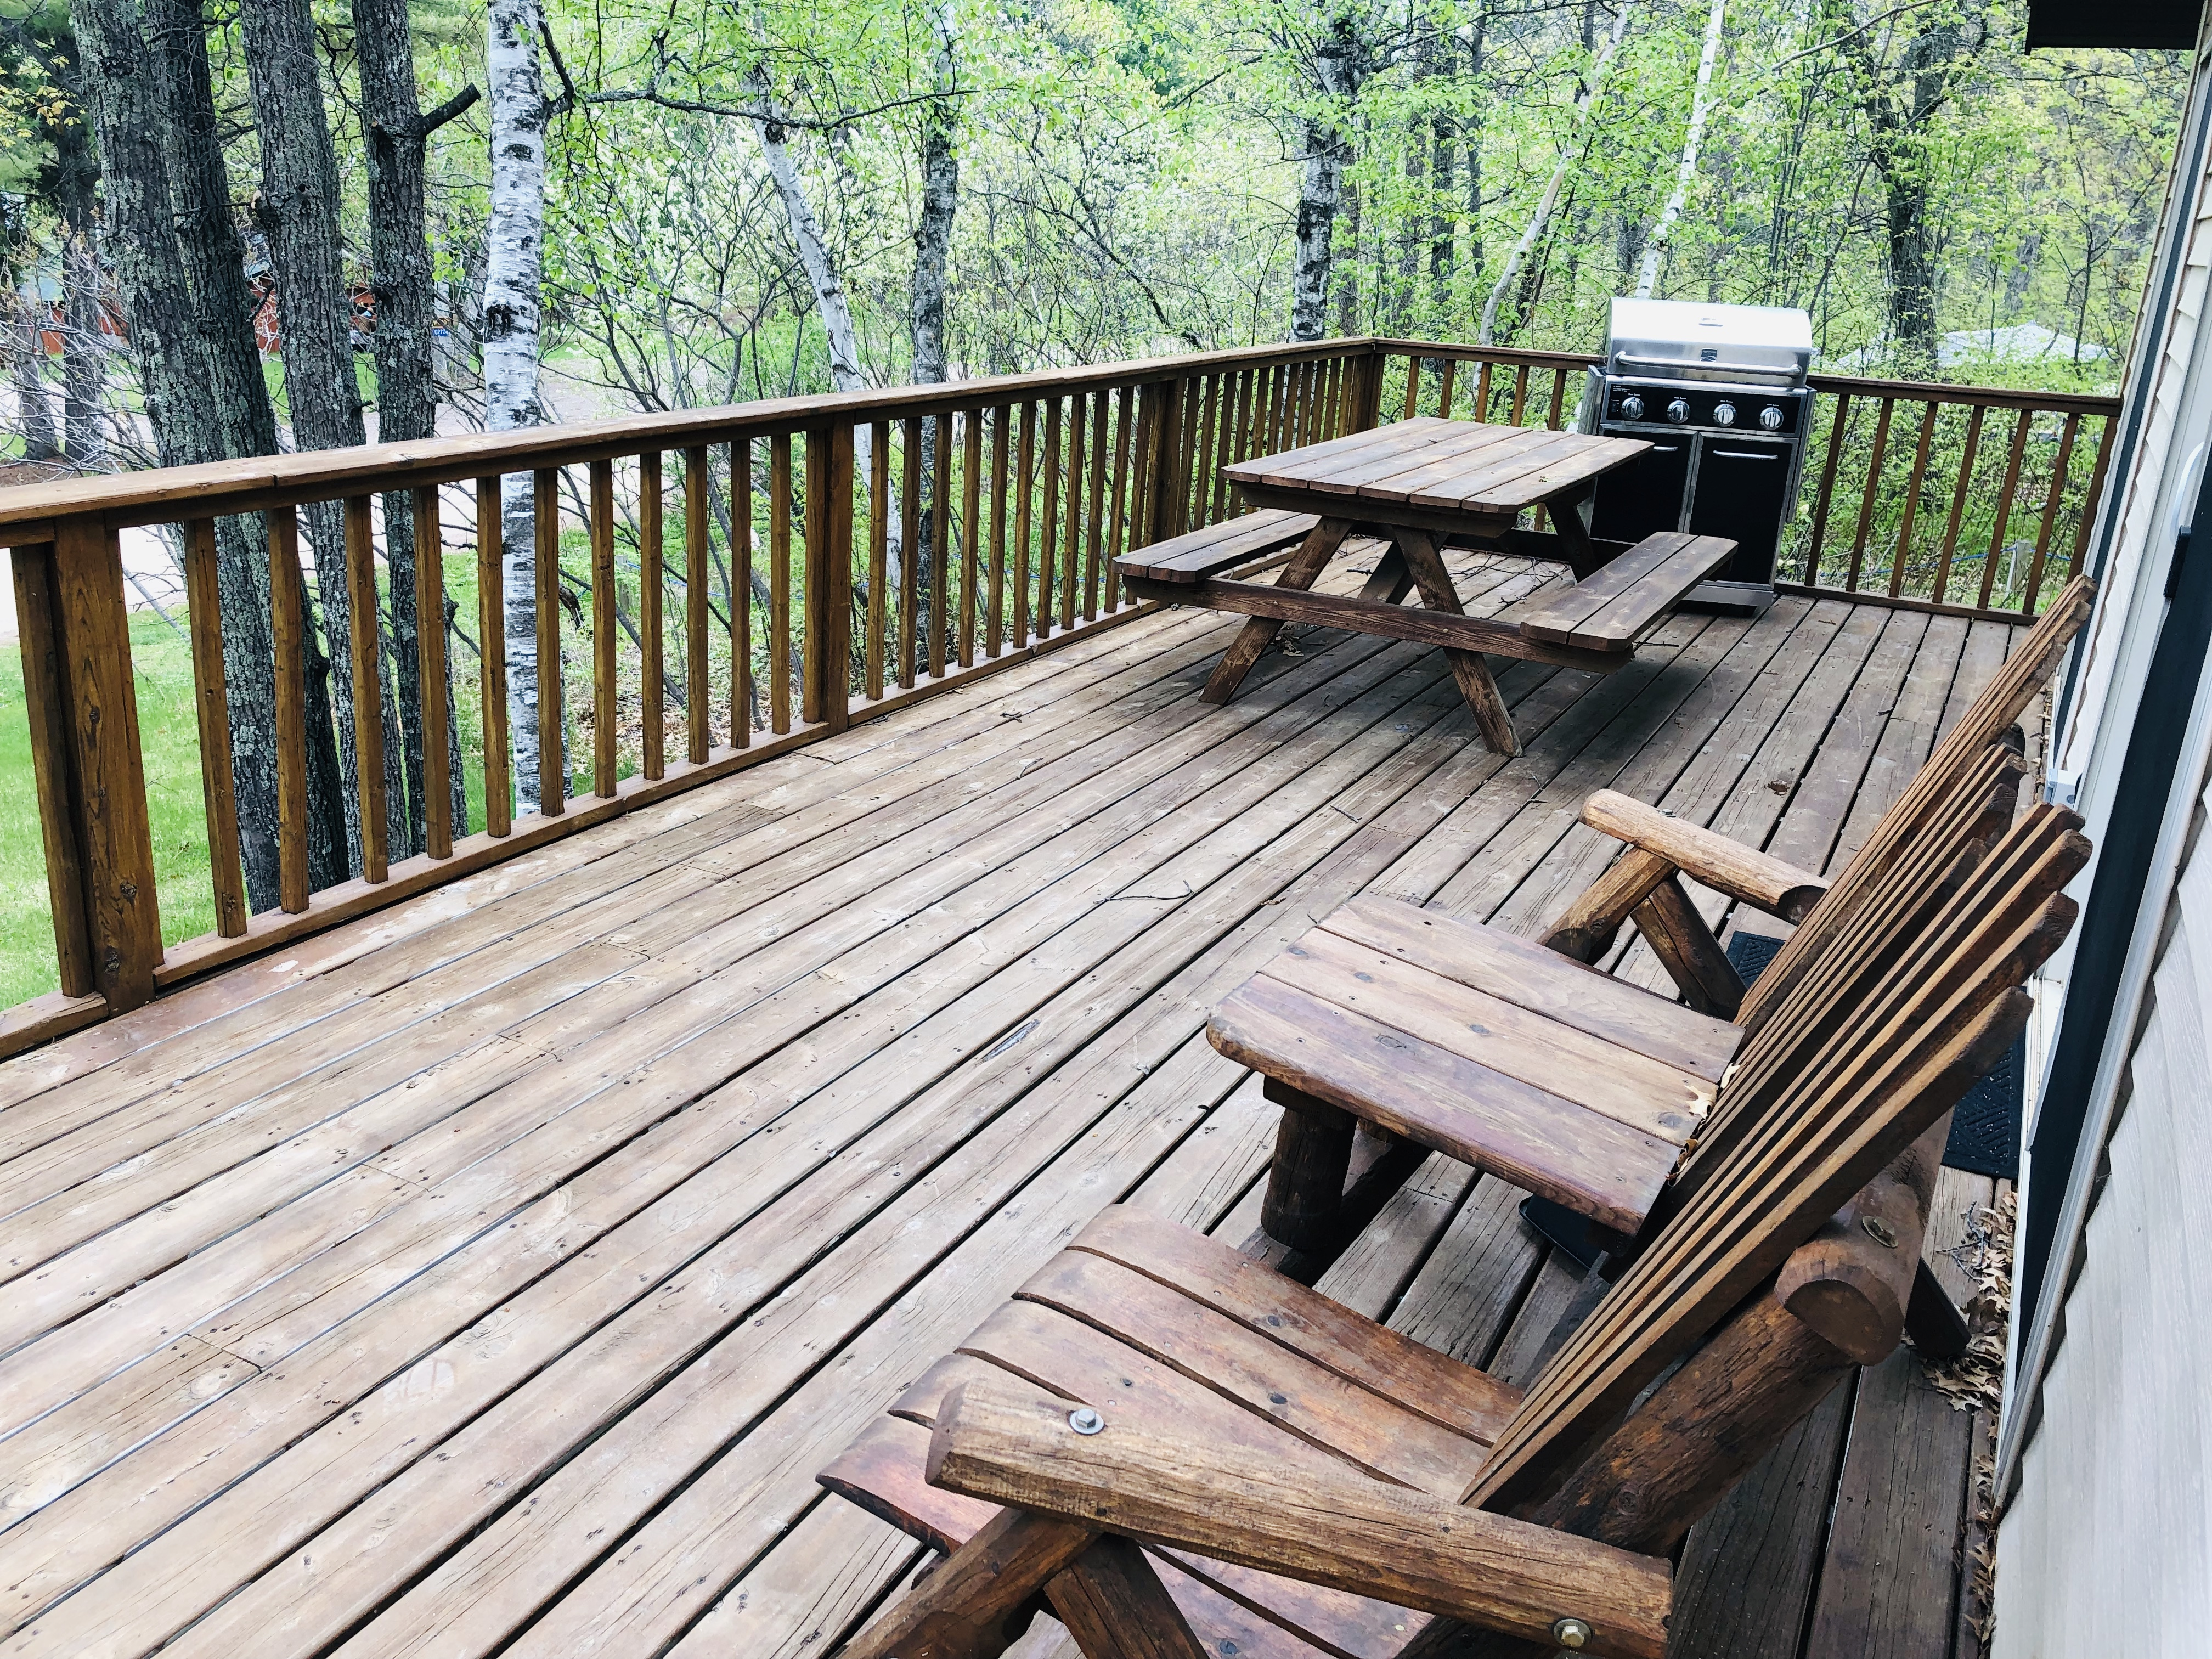 Virginian Pine patio with picnic table, Adirondack chairs and gas grill.